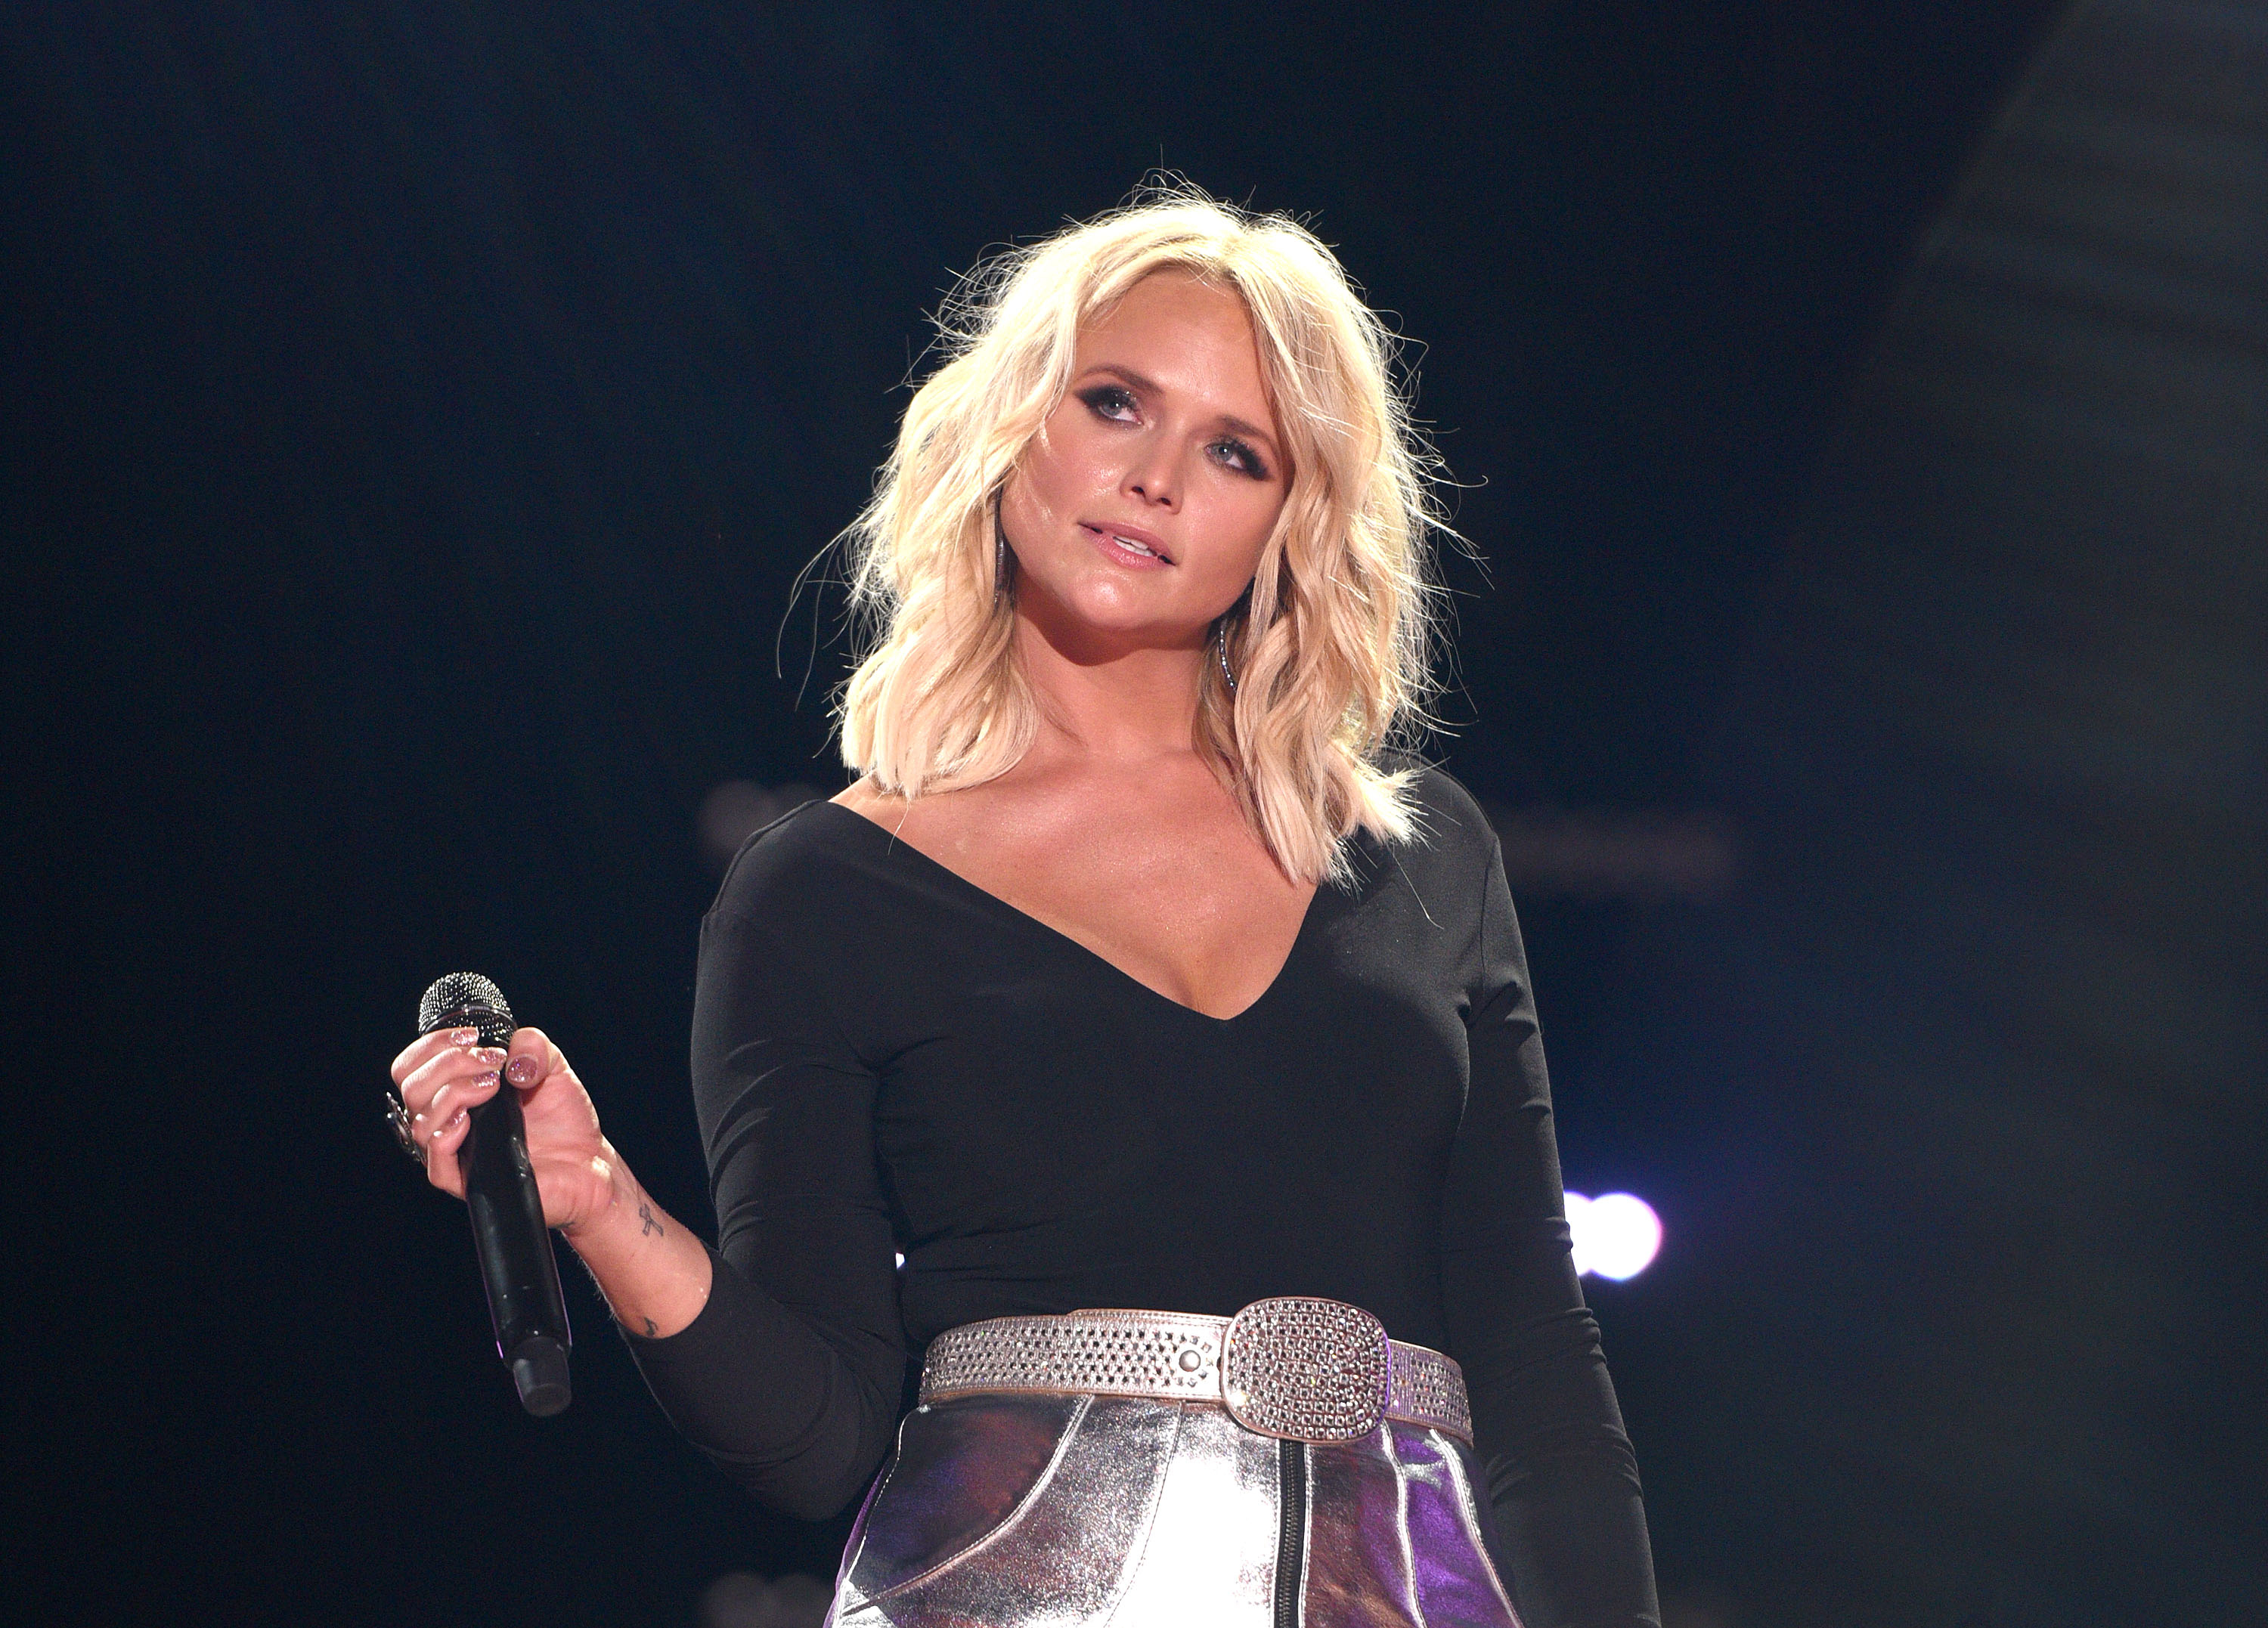 miranda lambert having sex